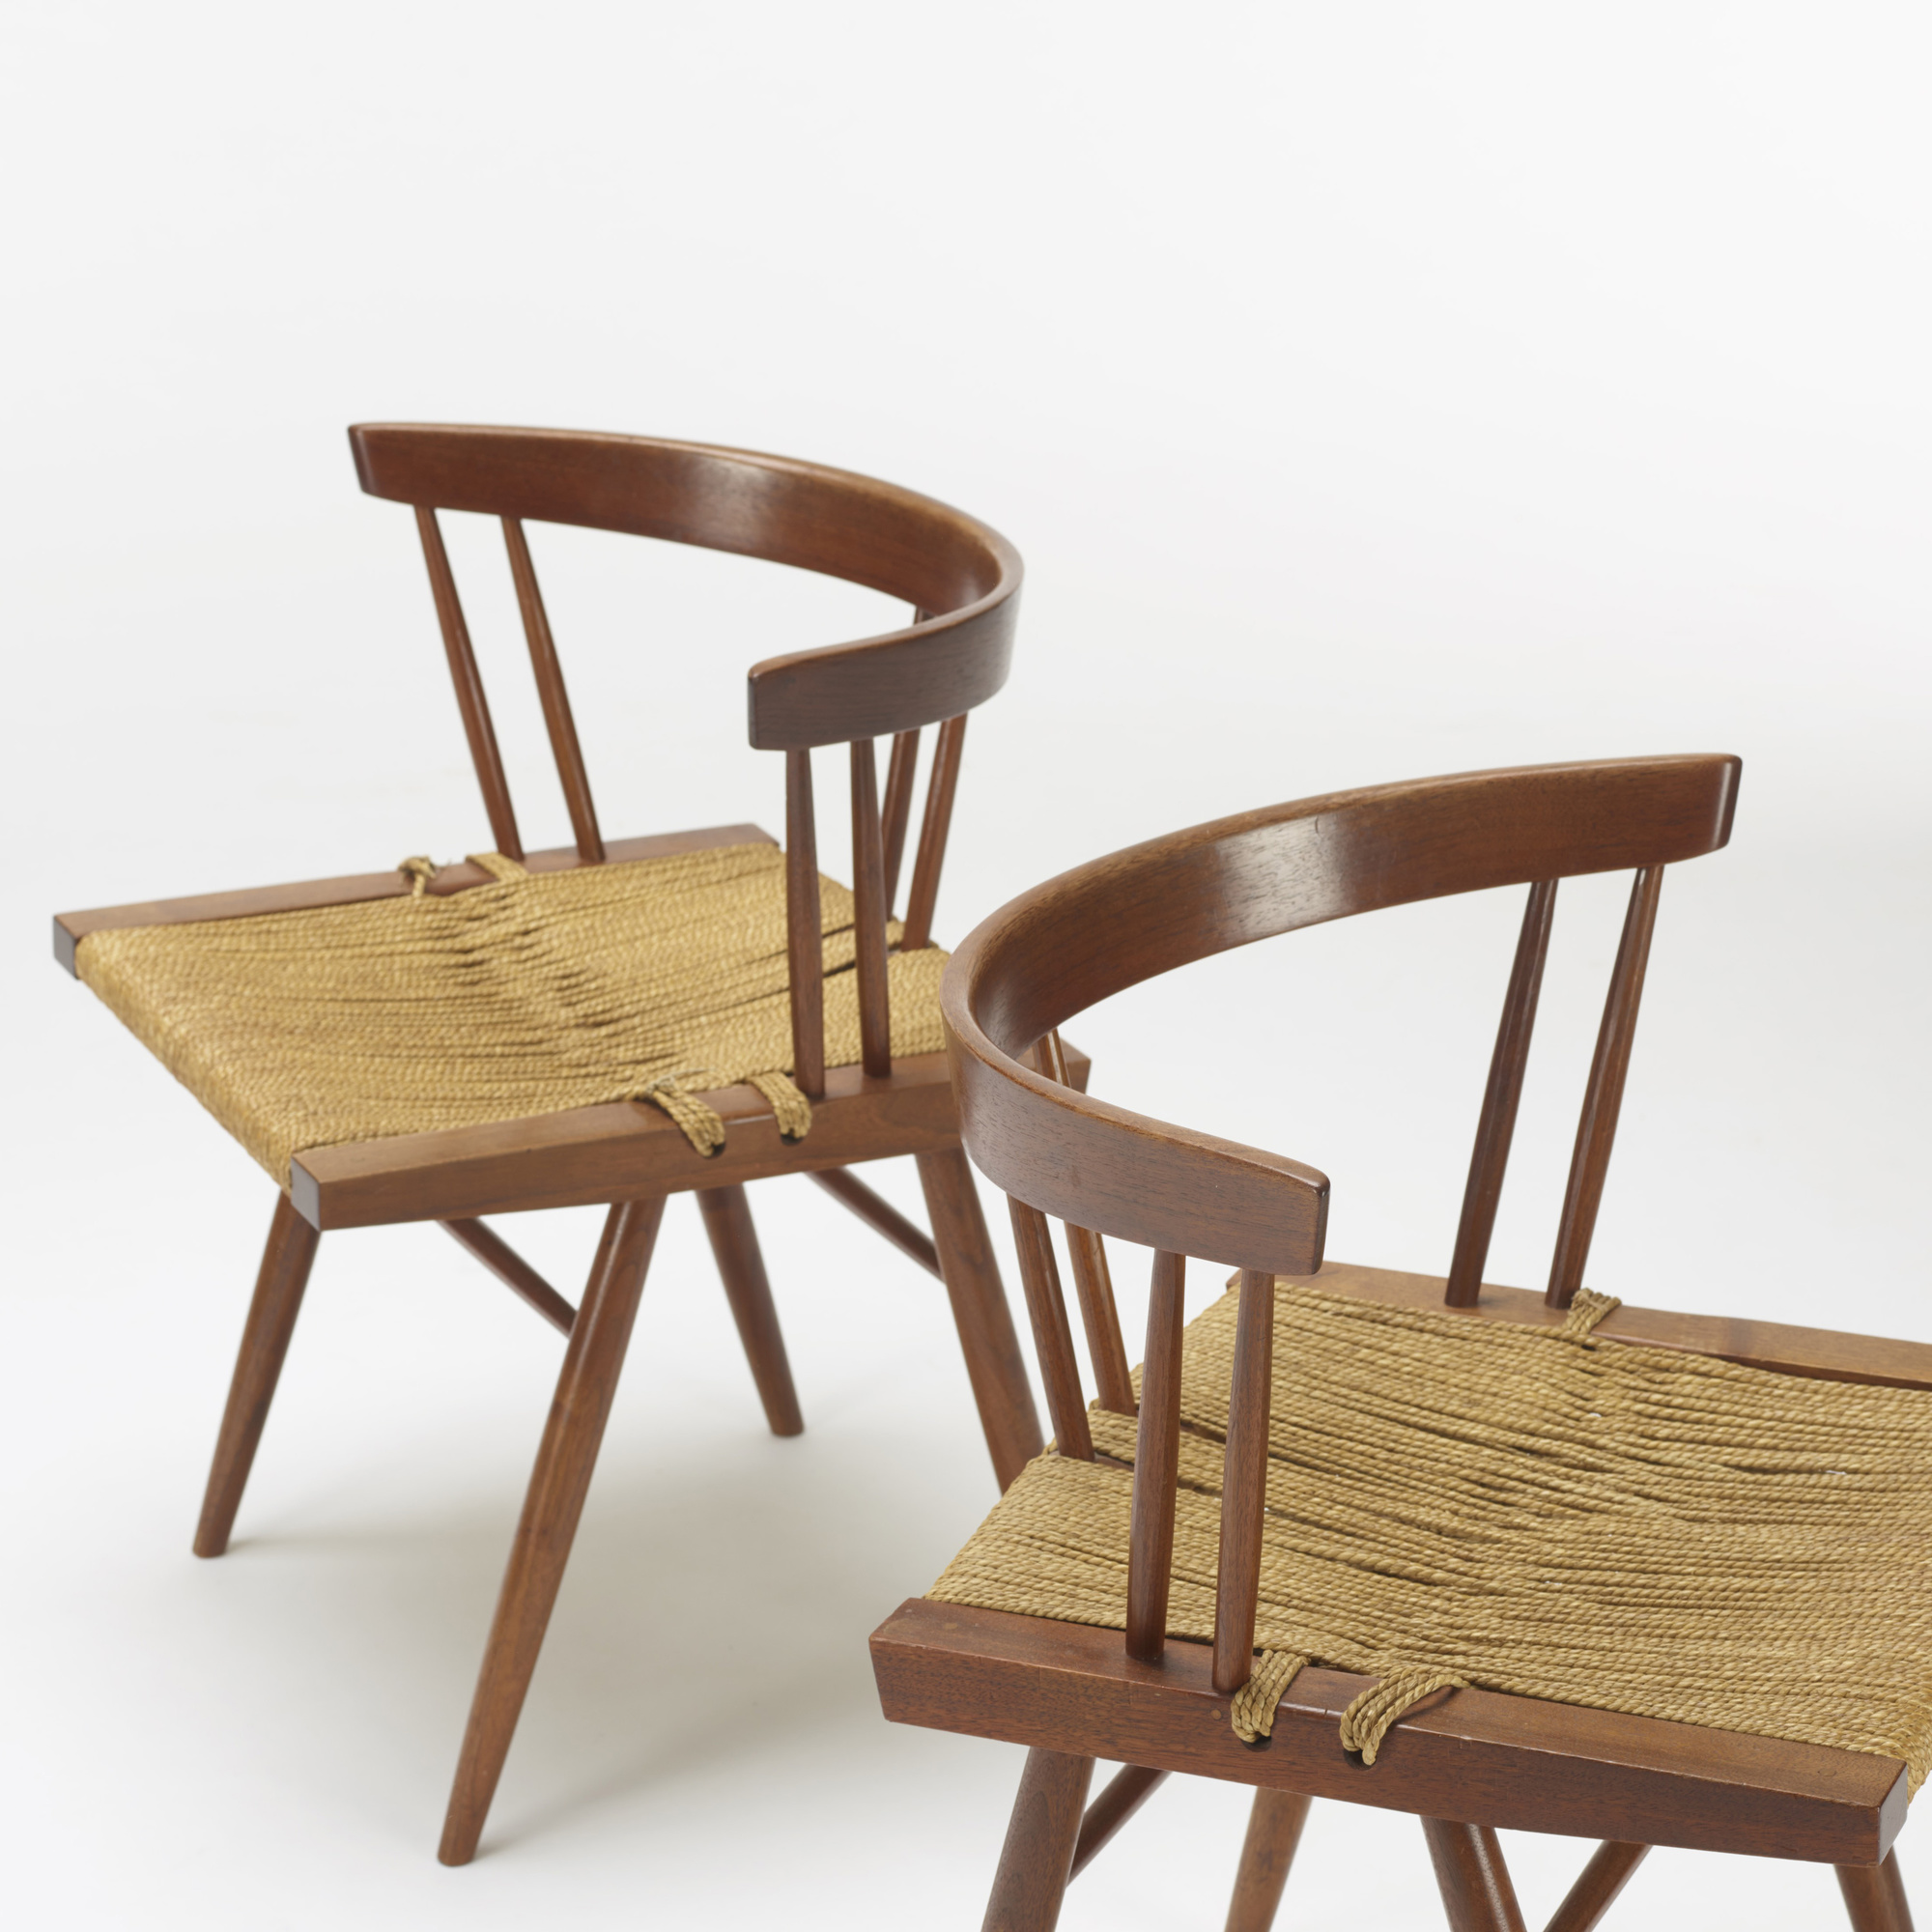 104: George Nakashima / Grass-Seated chairs, set of four (3 of 4)